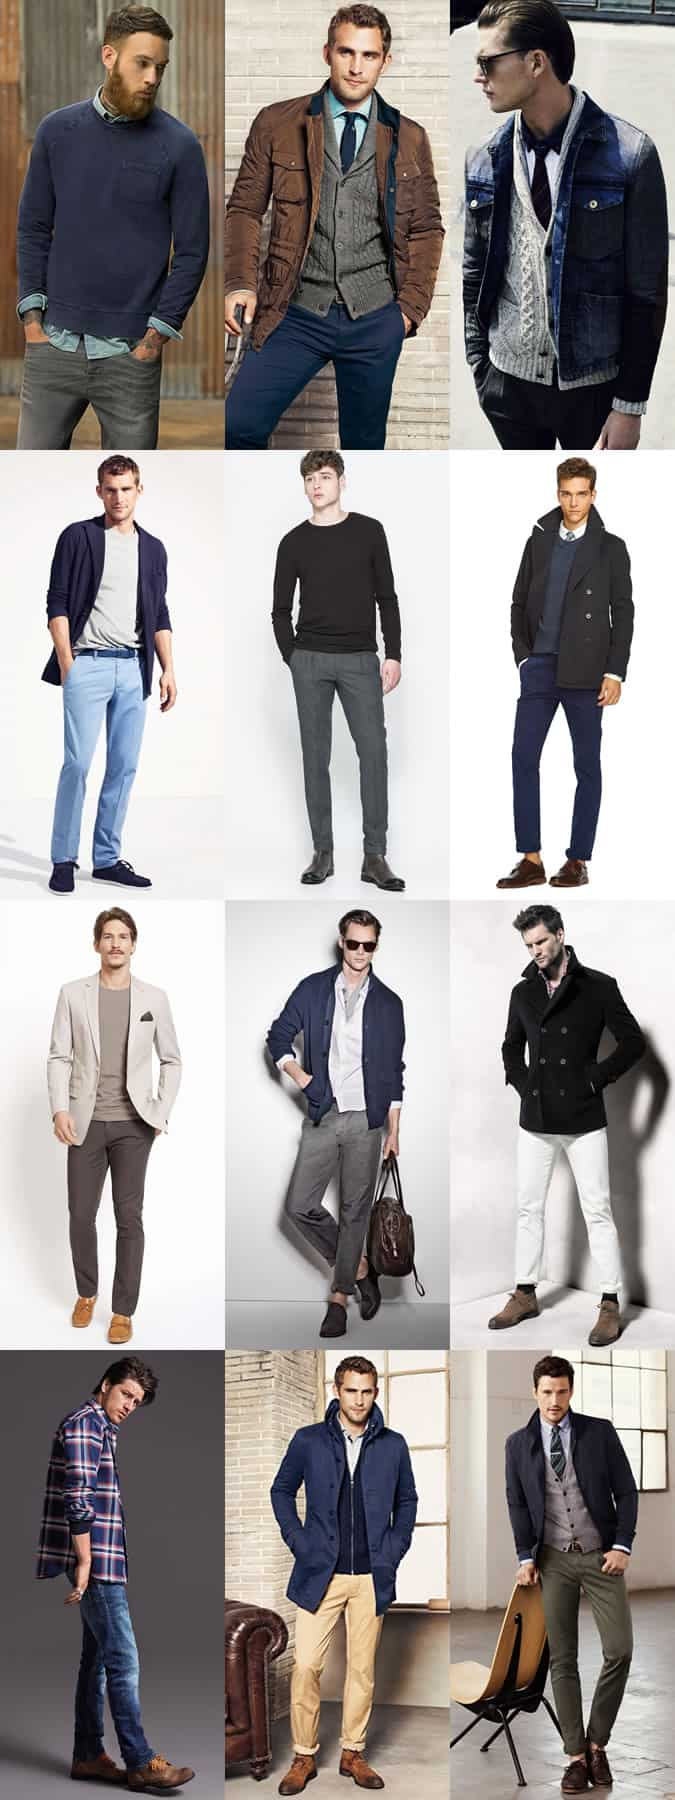 Men's Classic, Timeless Outfit Inspiration Lookbook